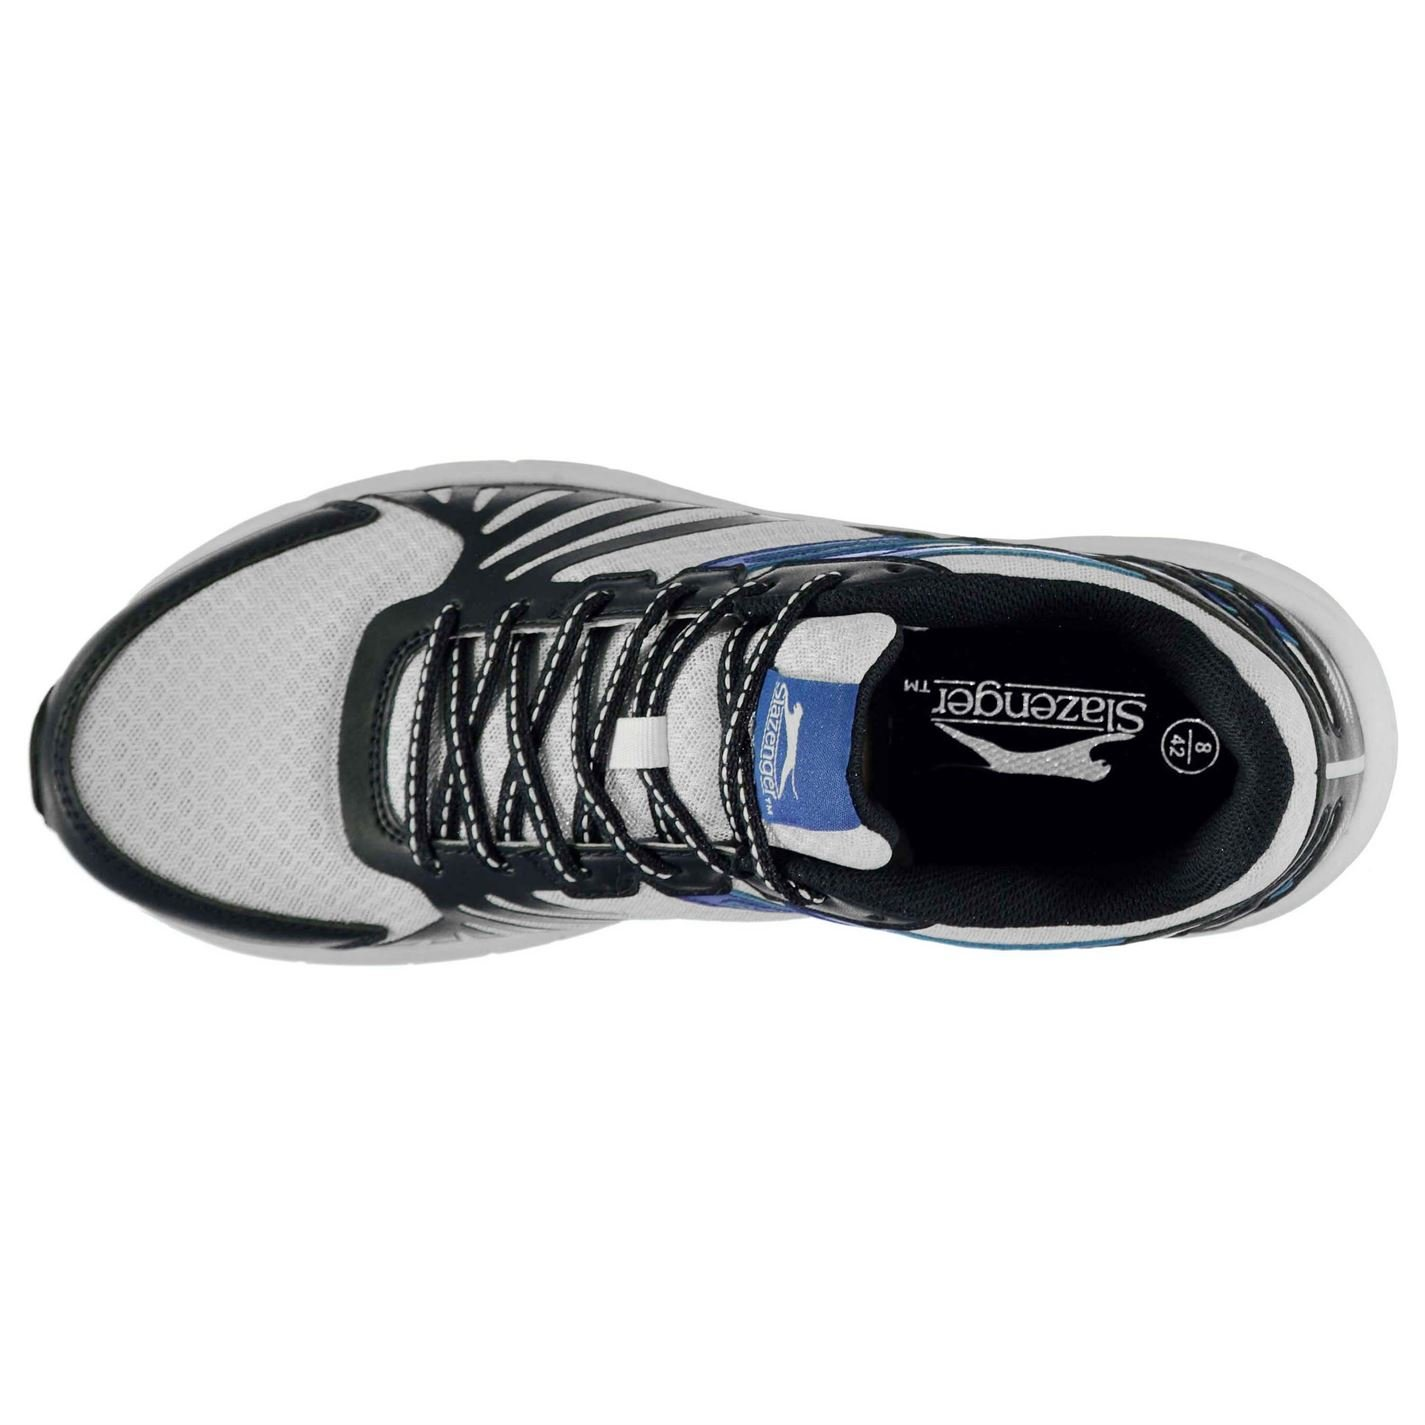 Slazenger Kids Dash Jogger Trainers Shoes Lace Up Mesh Padded Ankle Collar